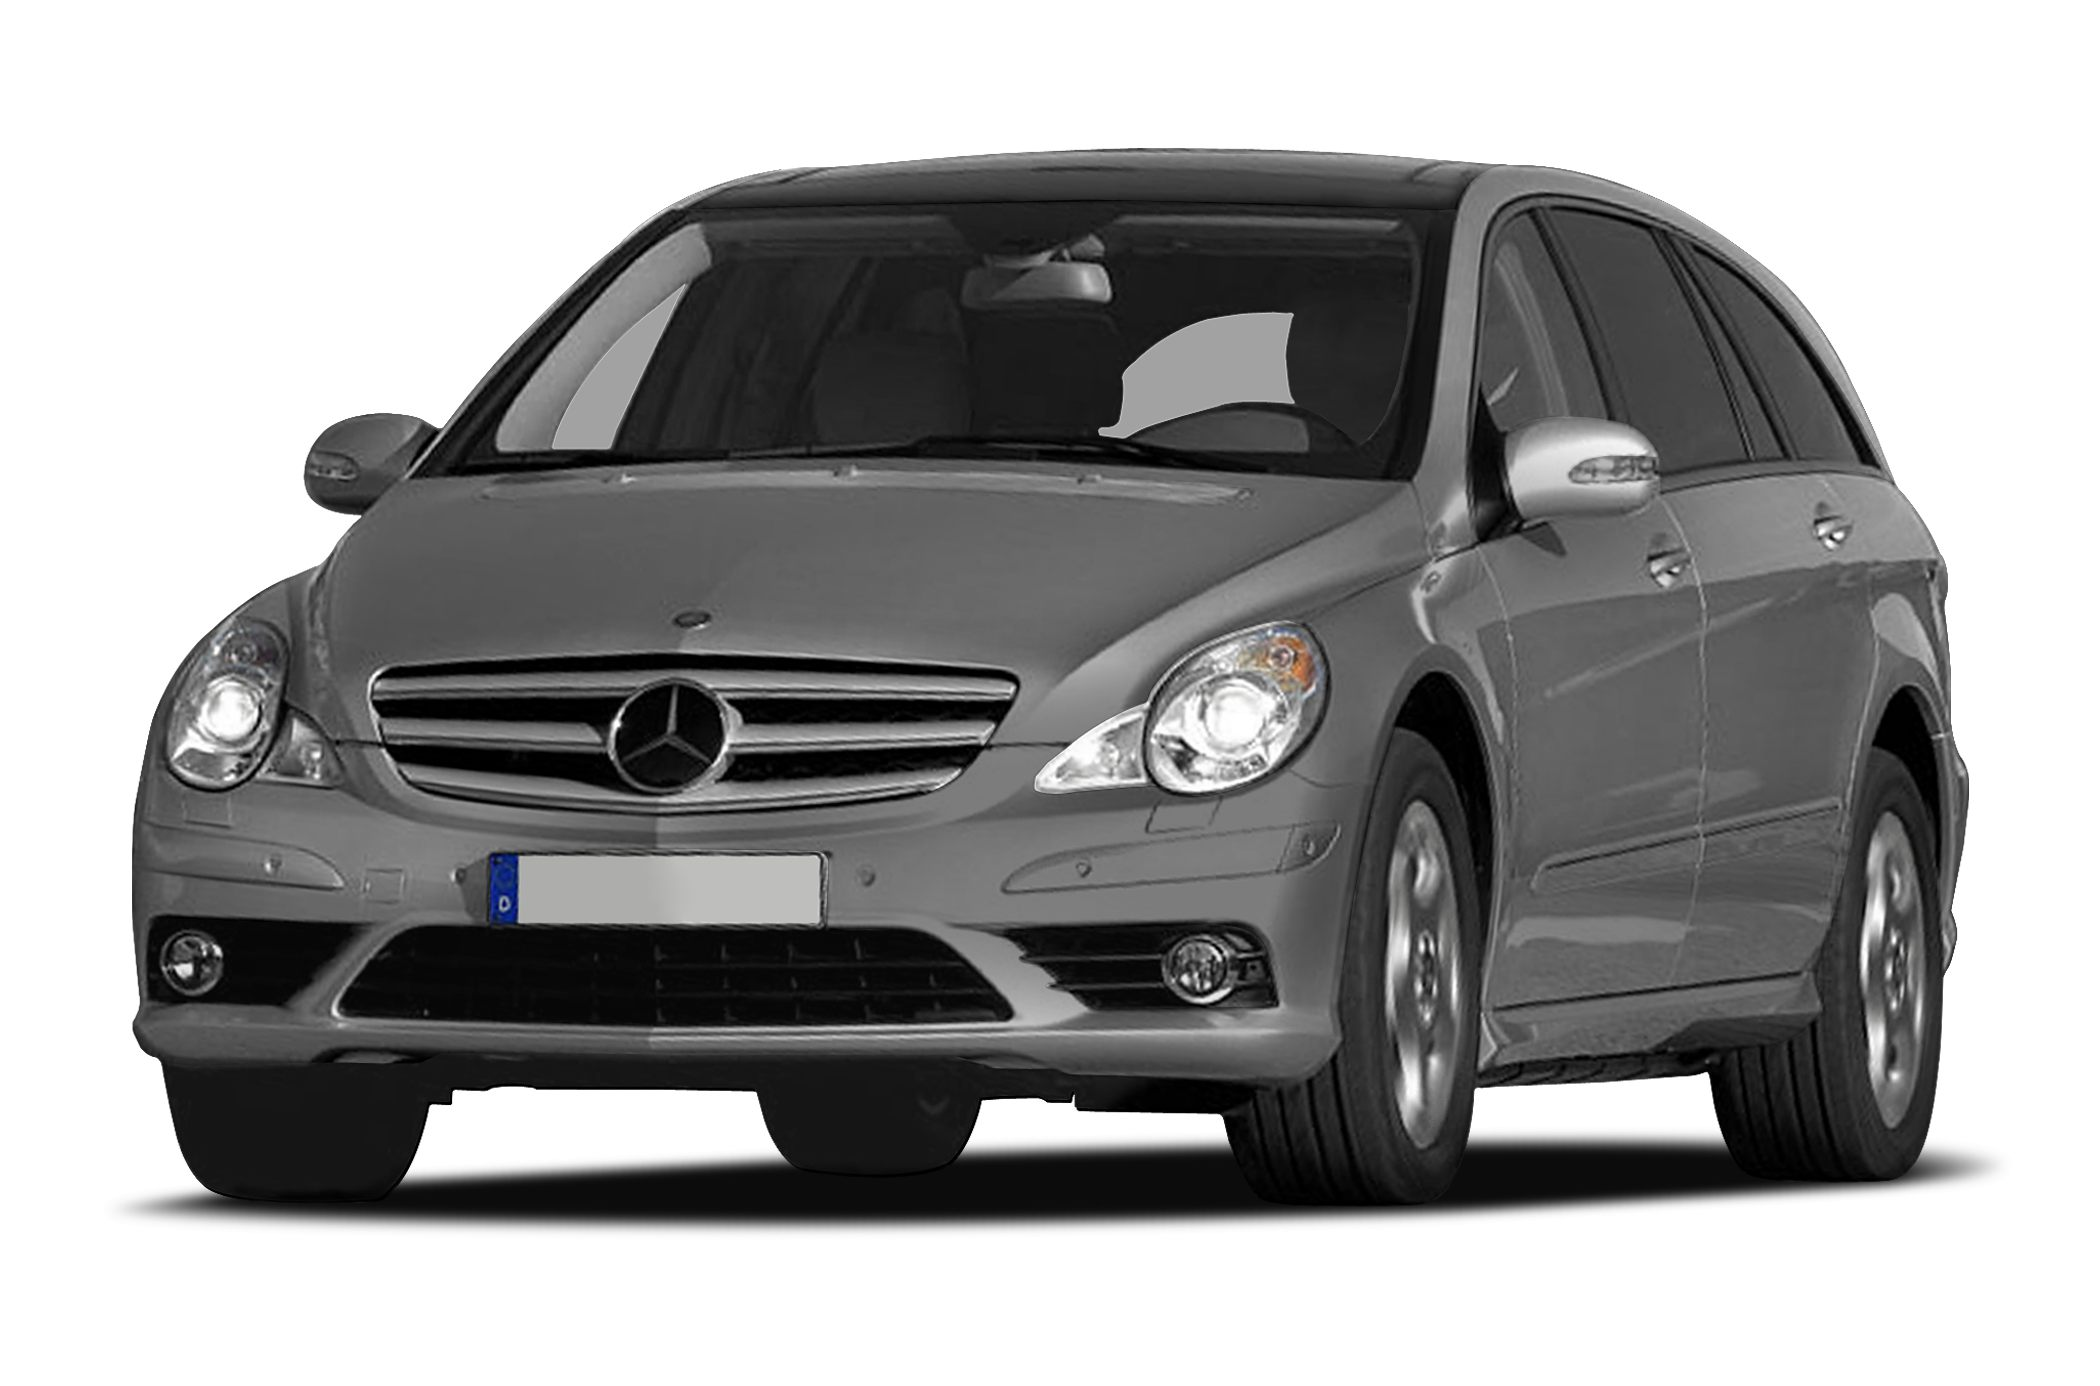 2008 Mercedes-Benz R-Class R350 4MATIC Wagon for sale in Springfield for $16,995 with 54,244 miles.